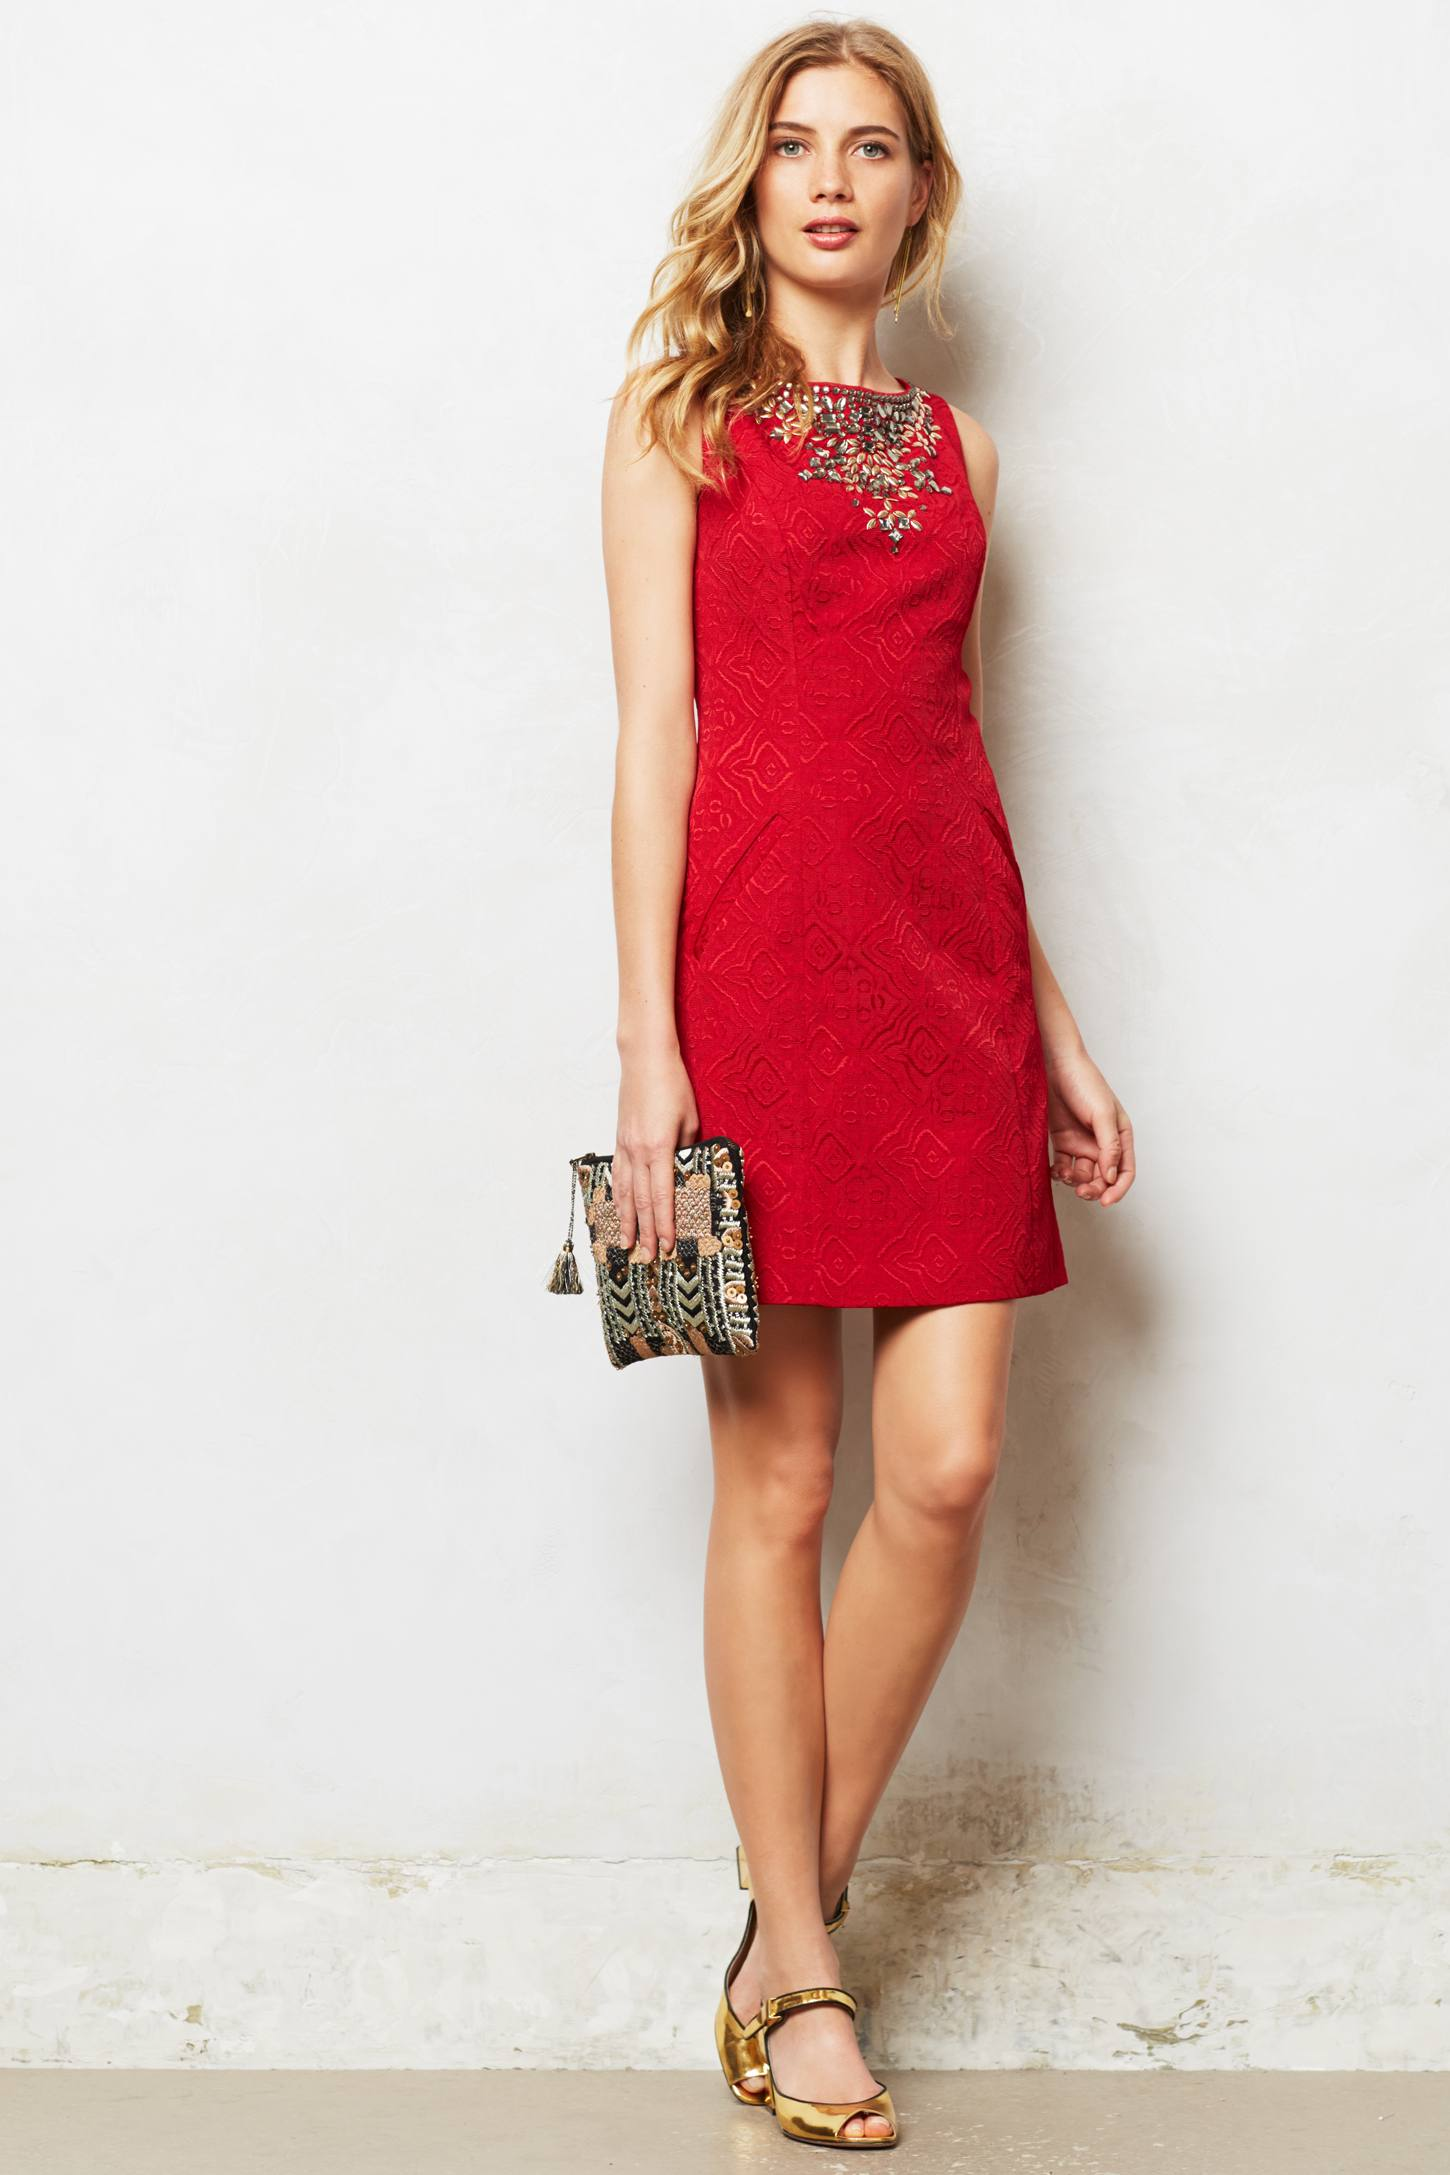 Effortlessly with roxy catharsis i can 39 t find my size in for Online stores like anthropologie